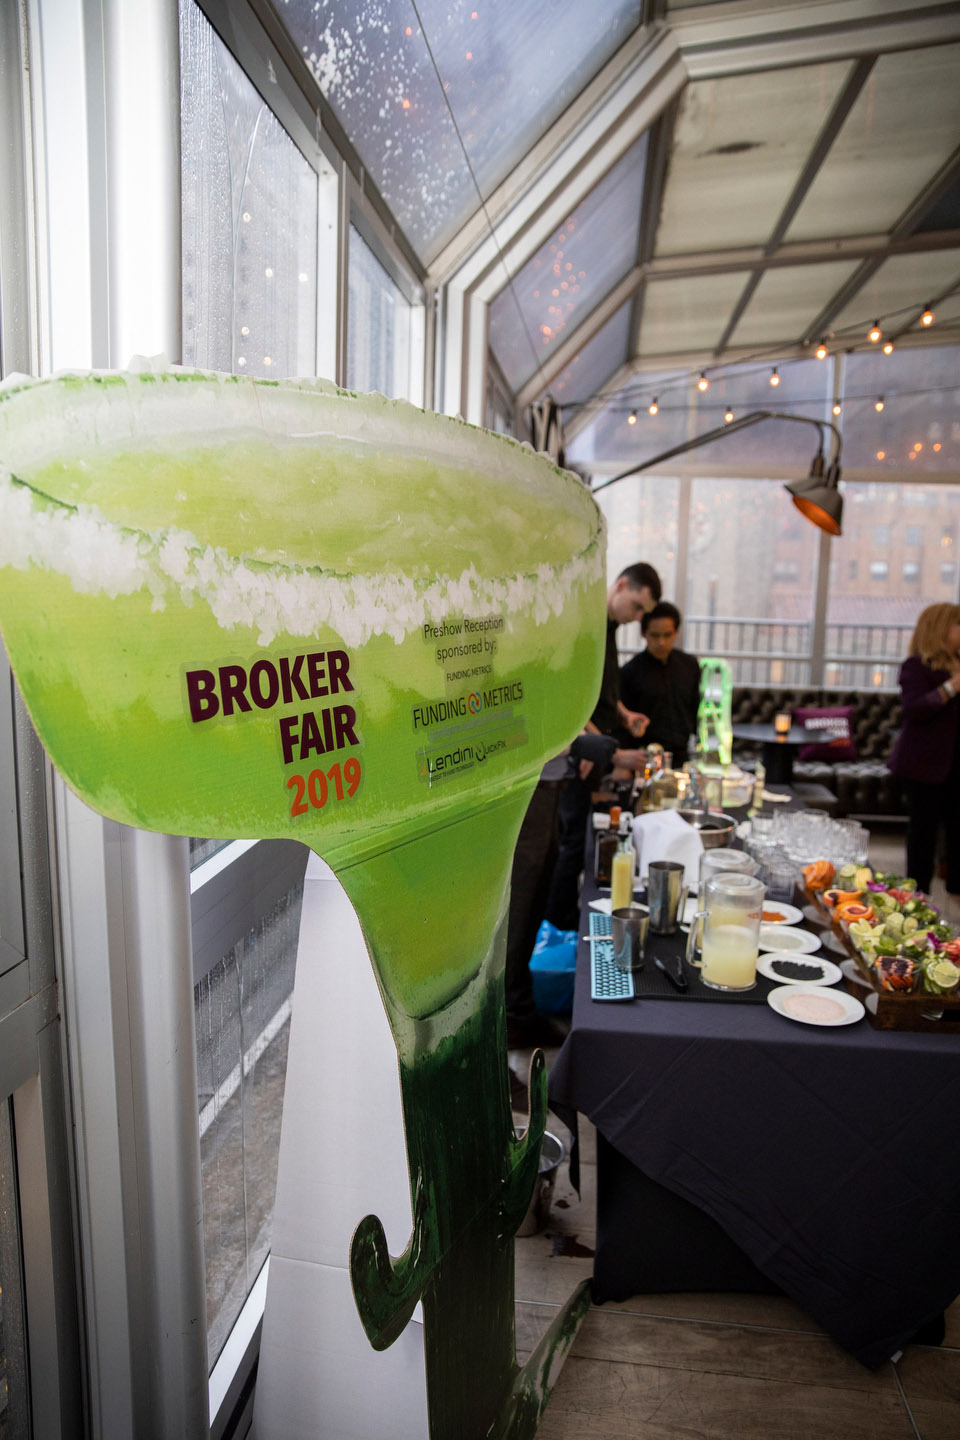 Broker Fair 2019 - Presented by deBanked - 3